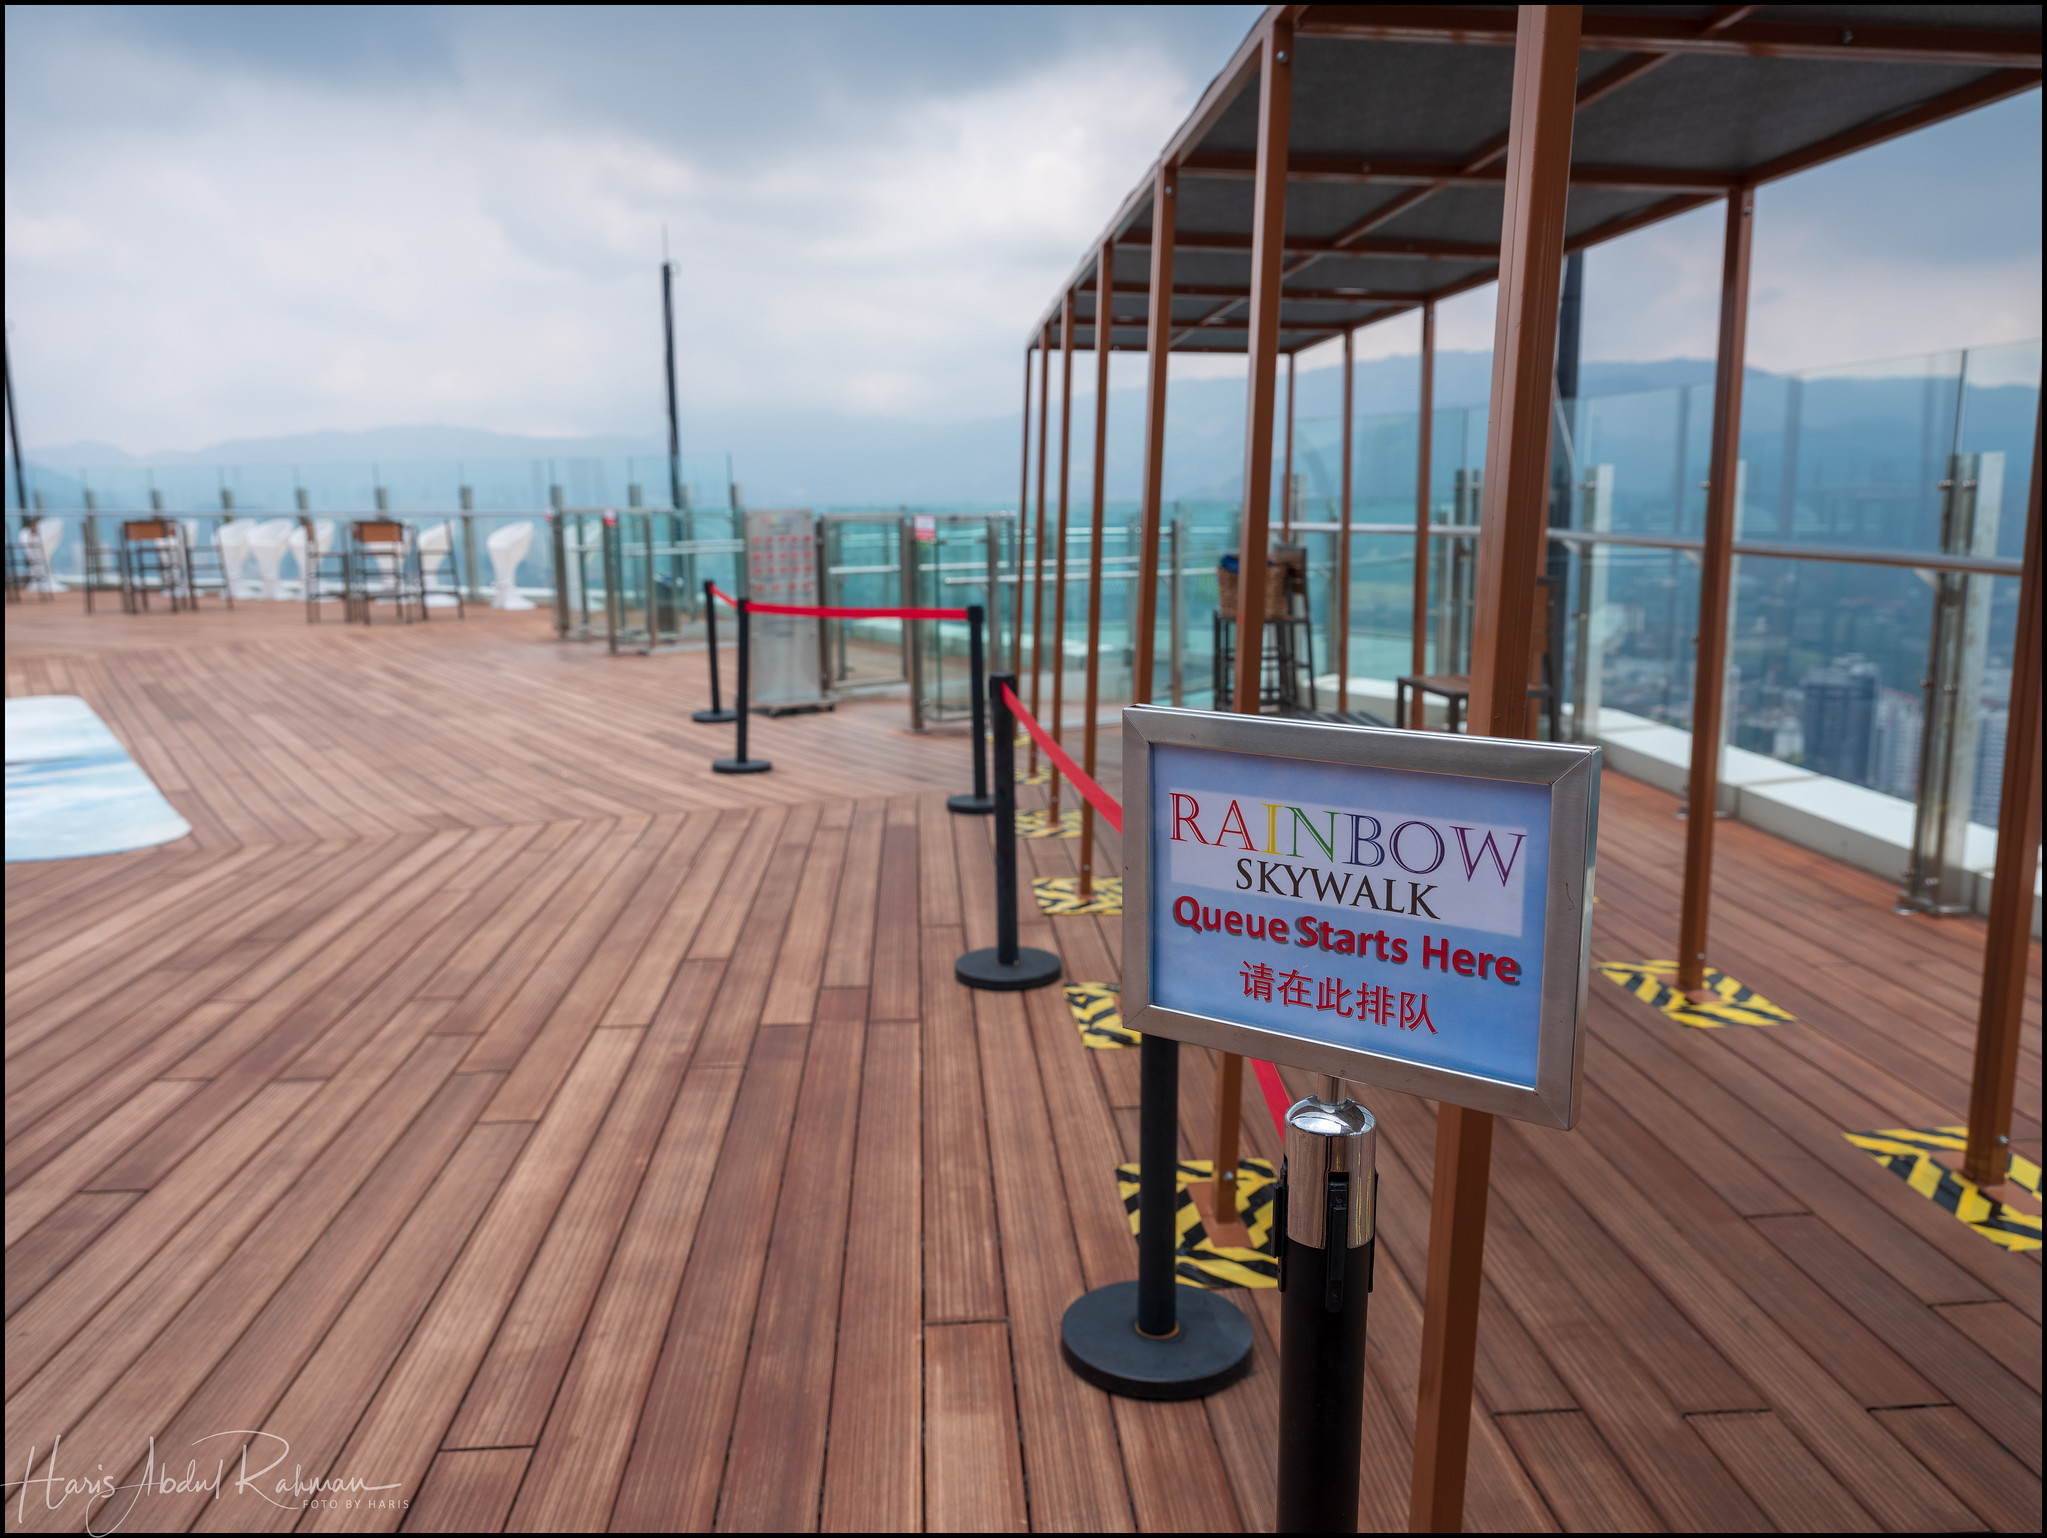 At the highest deck